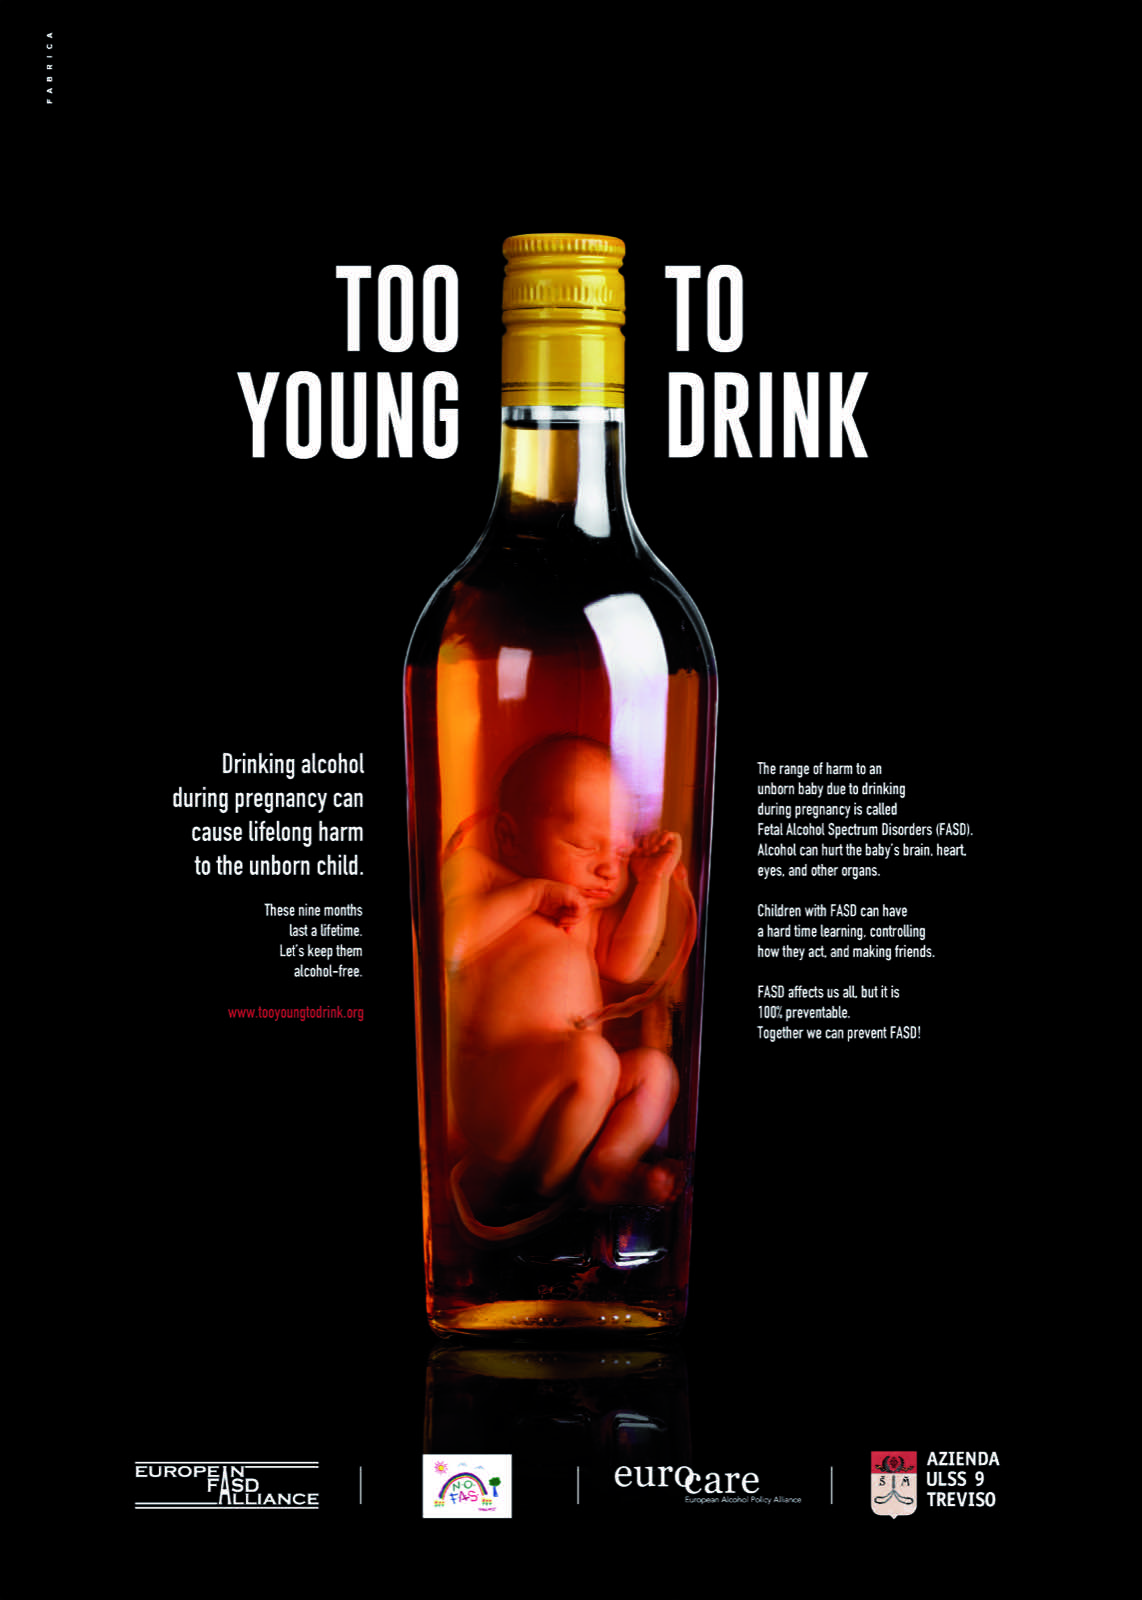 Too Young To Drink - Fabrica